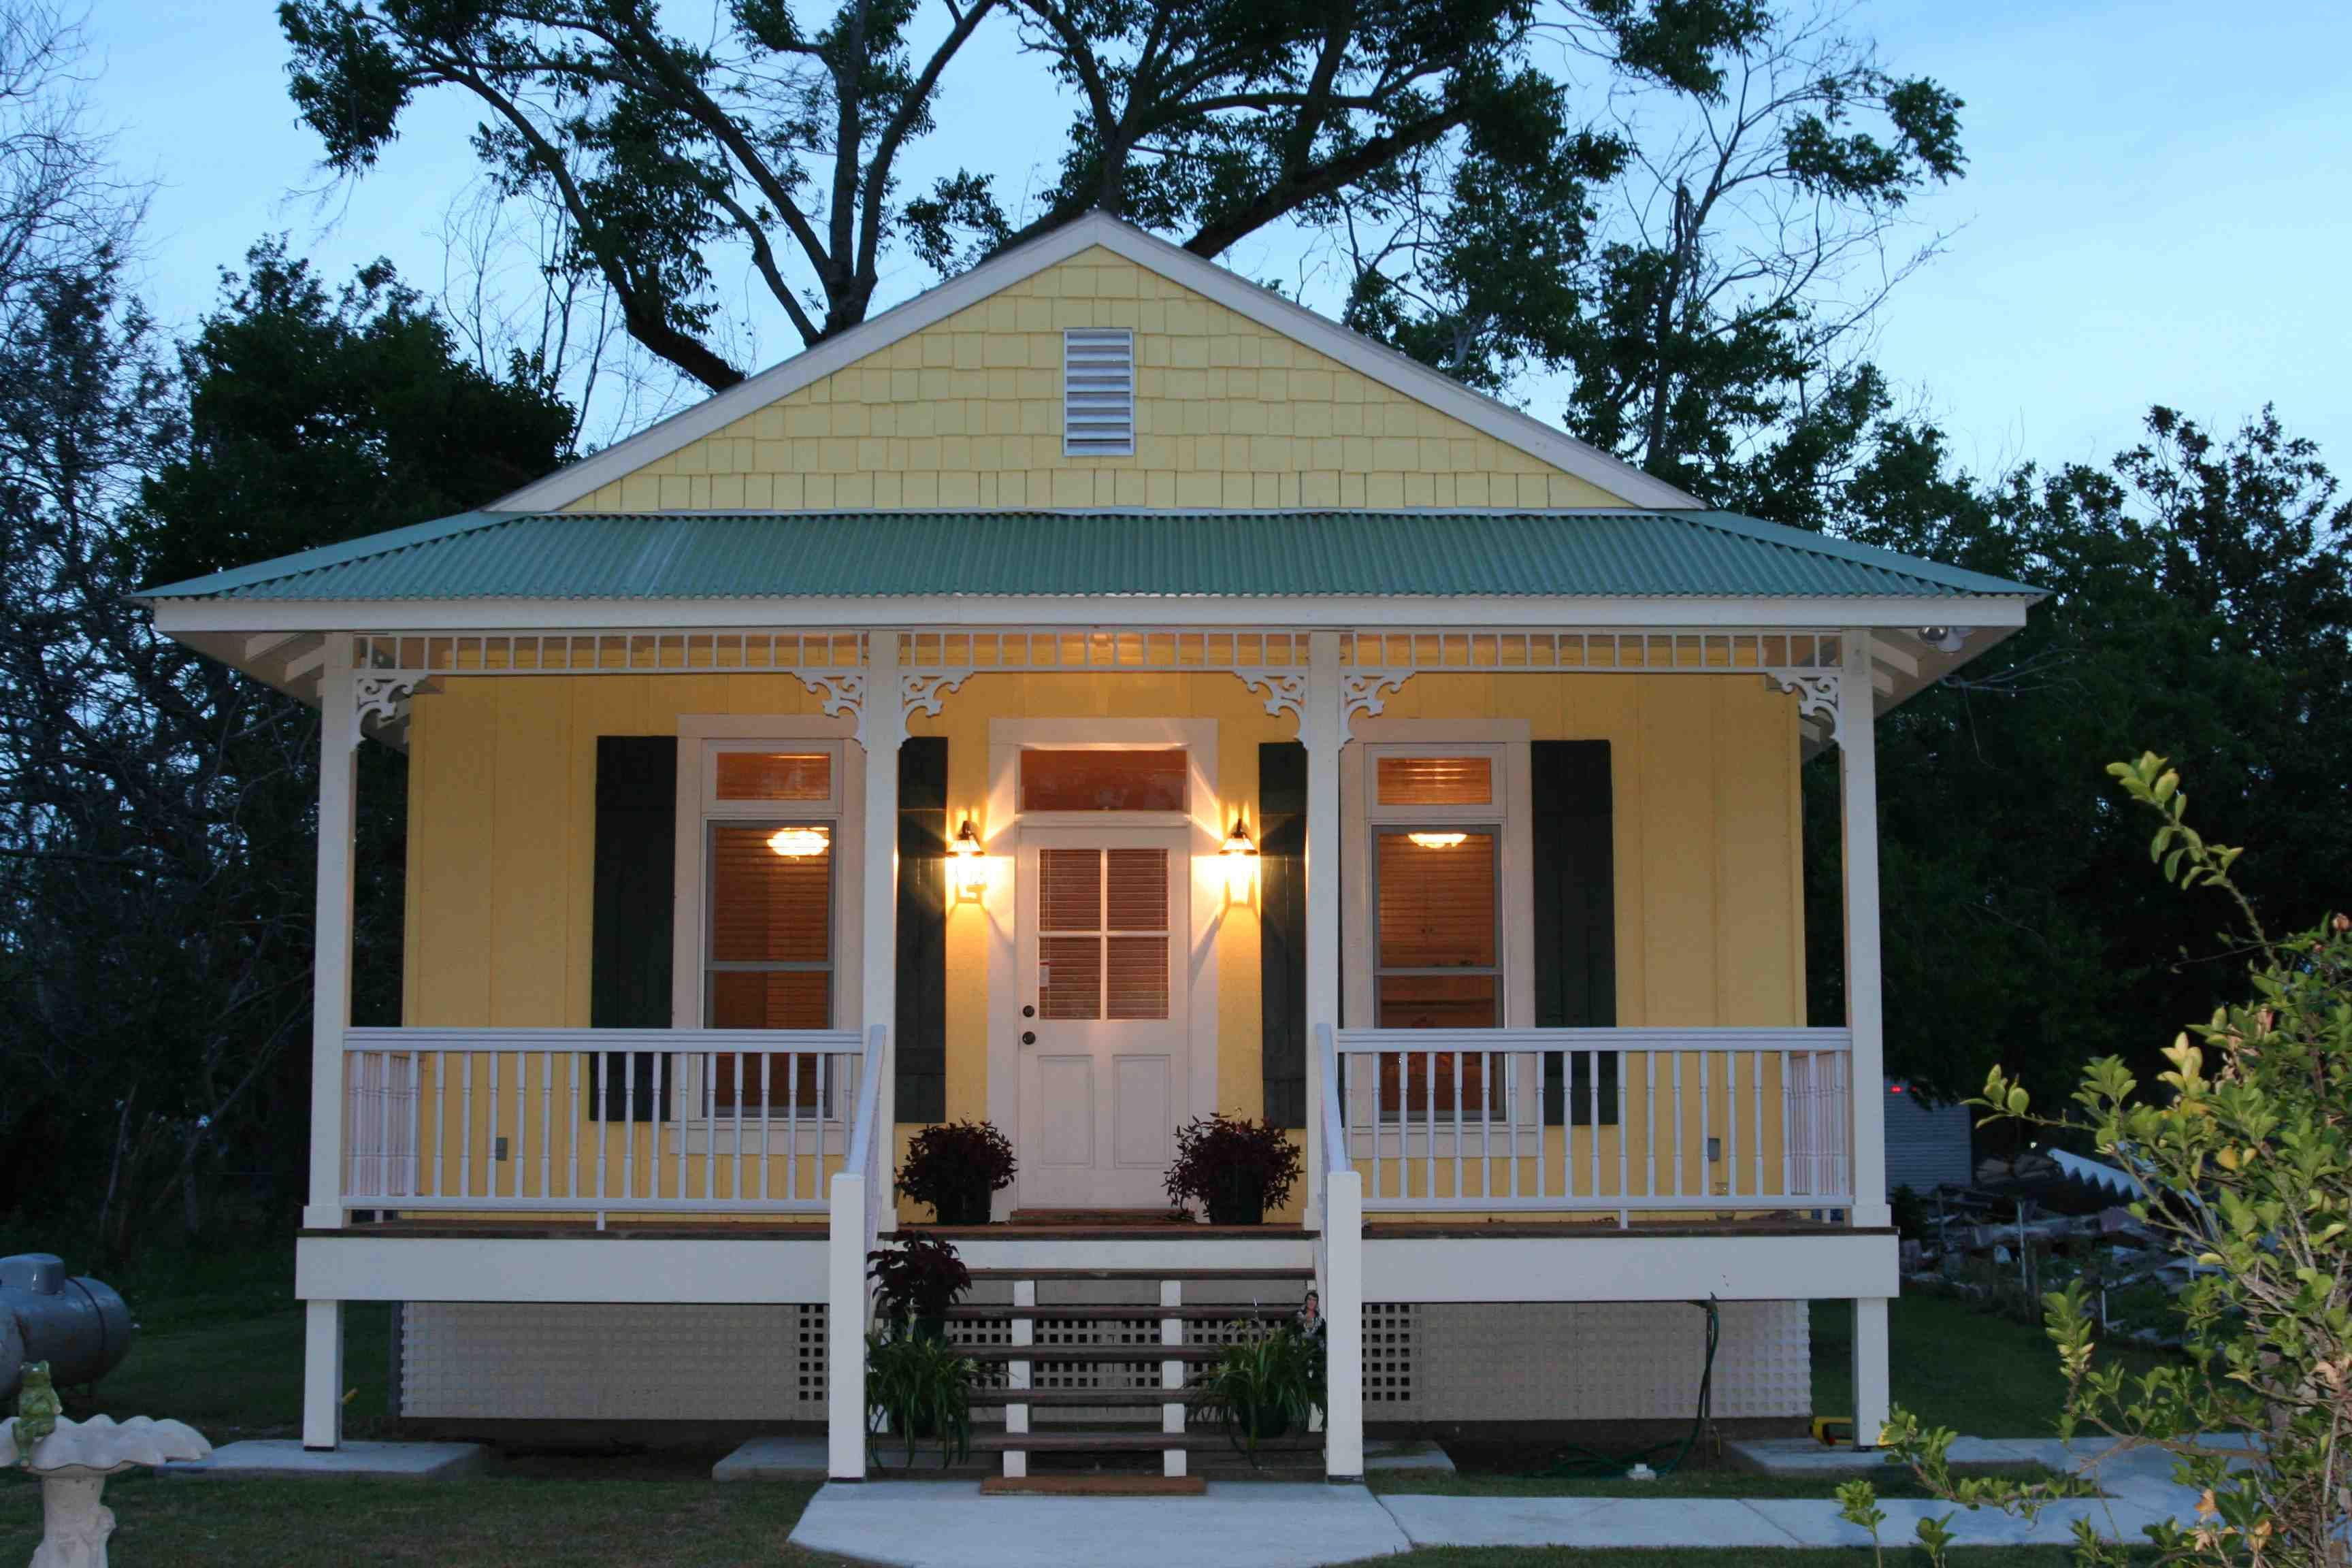 Creole design french creole architectural pinterest for French creole house plans